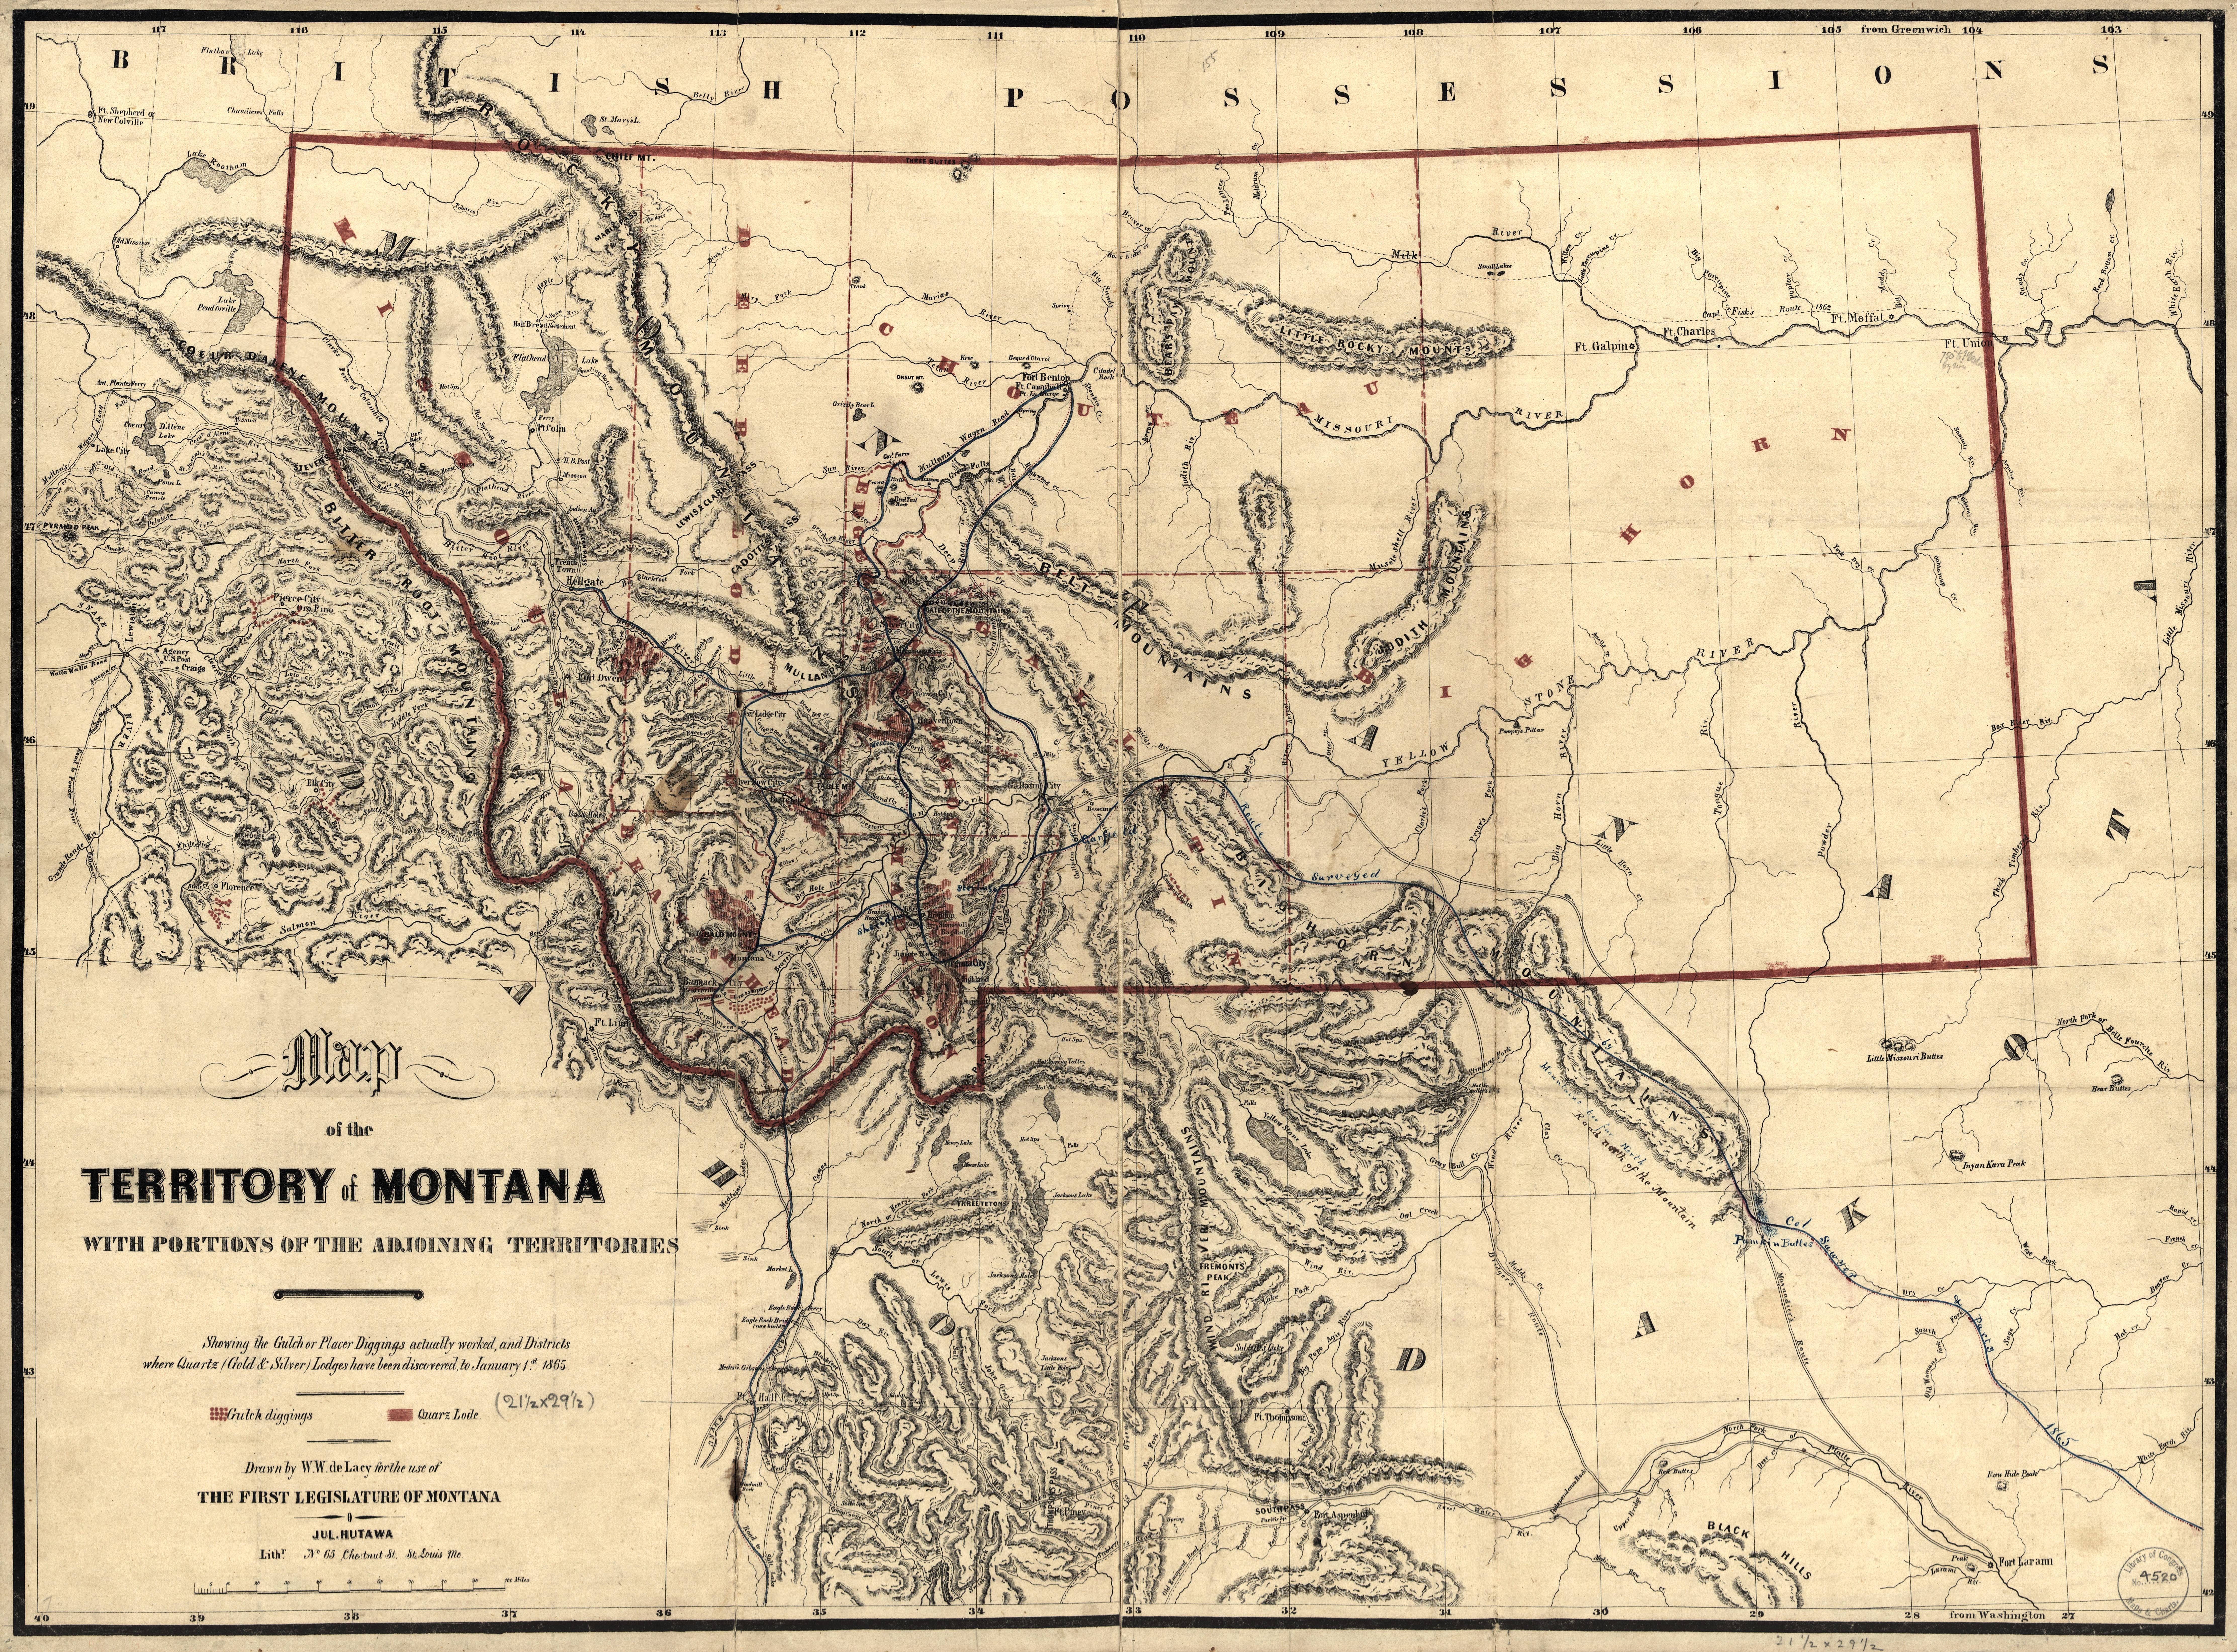 Montana Territory Showing Mineral Strikes - Montanna map